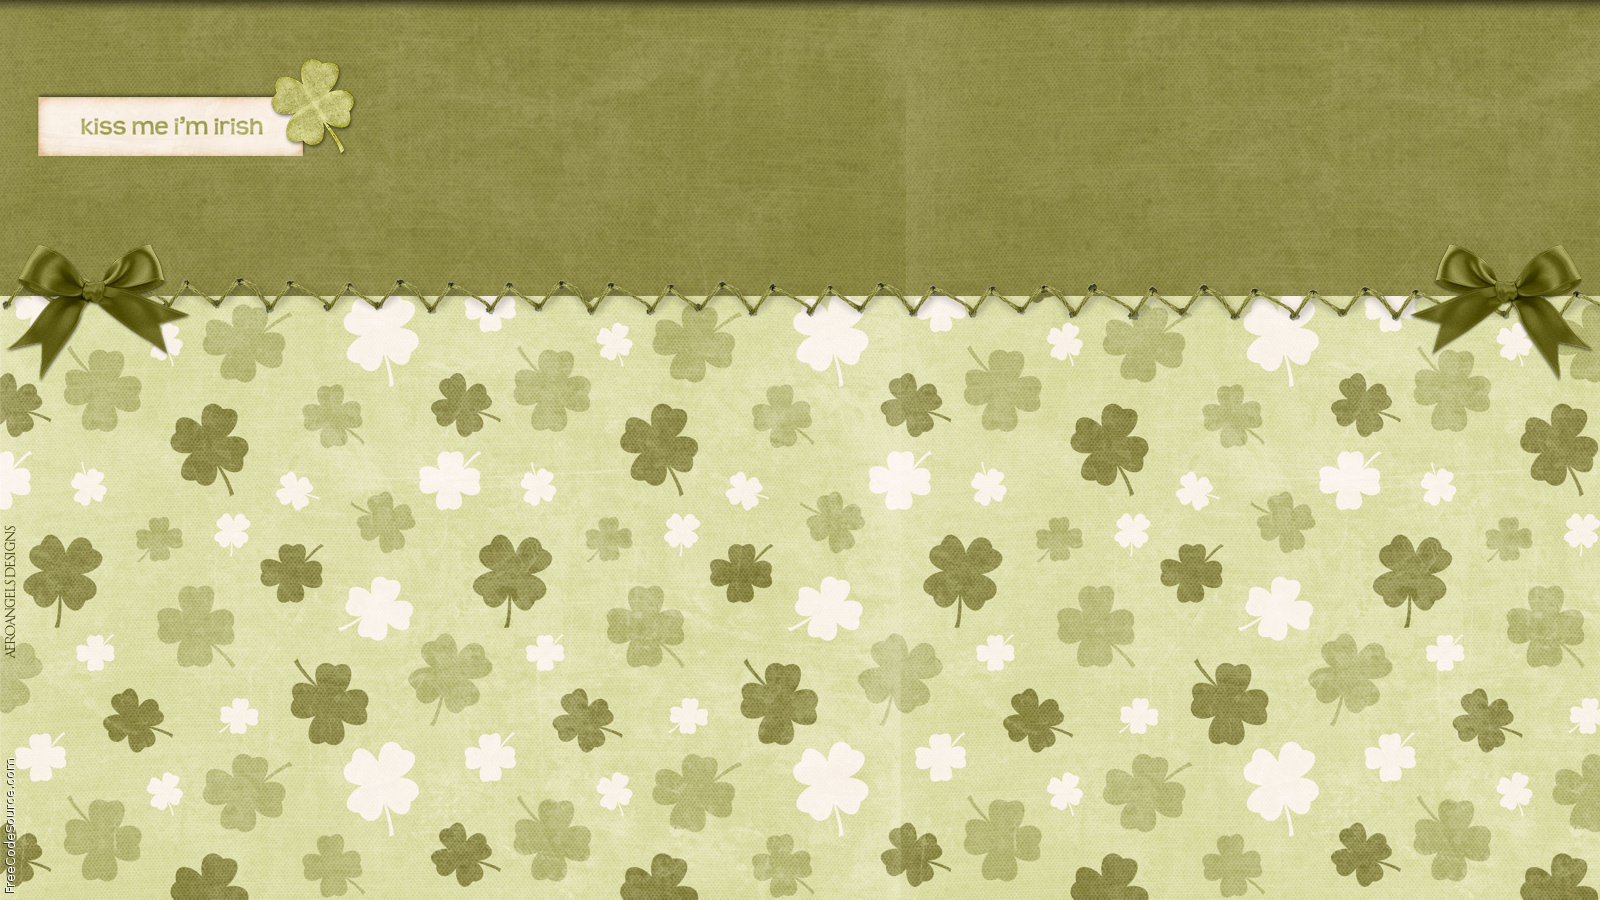 Kiss Me Im Irish Formspring Backgrounds Kiss Me Im Irish Formspring 1600x900